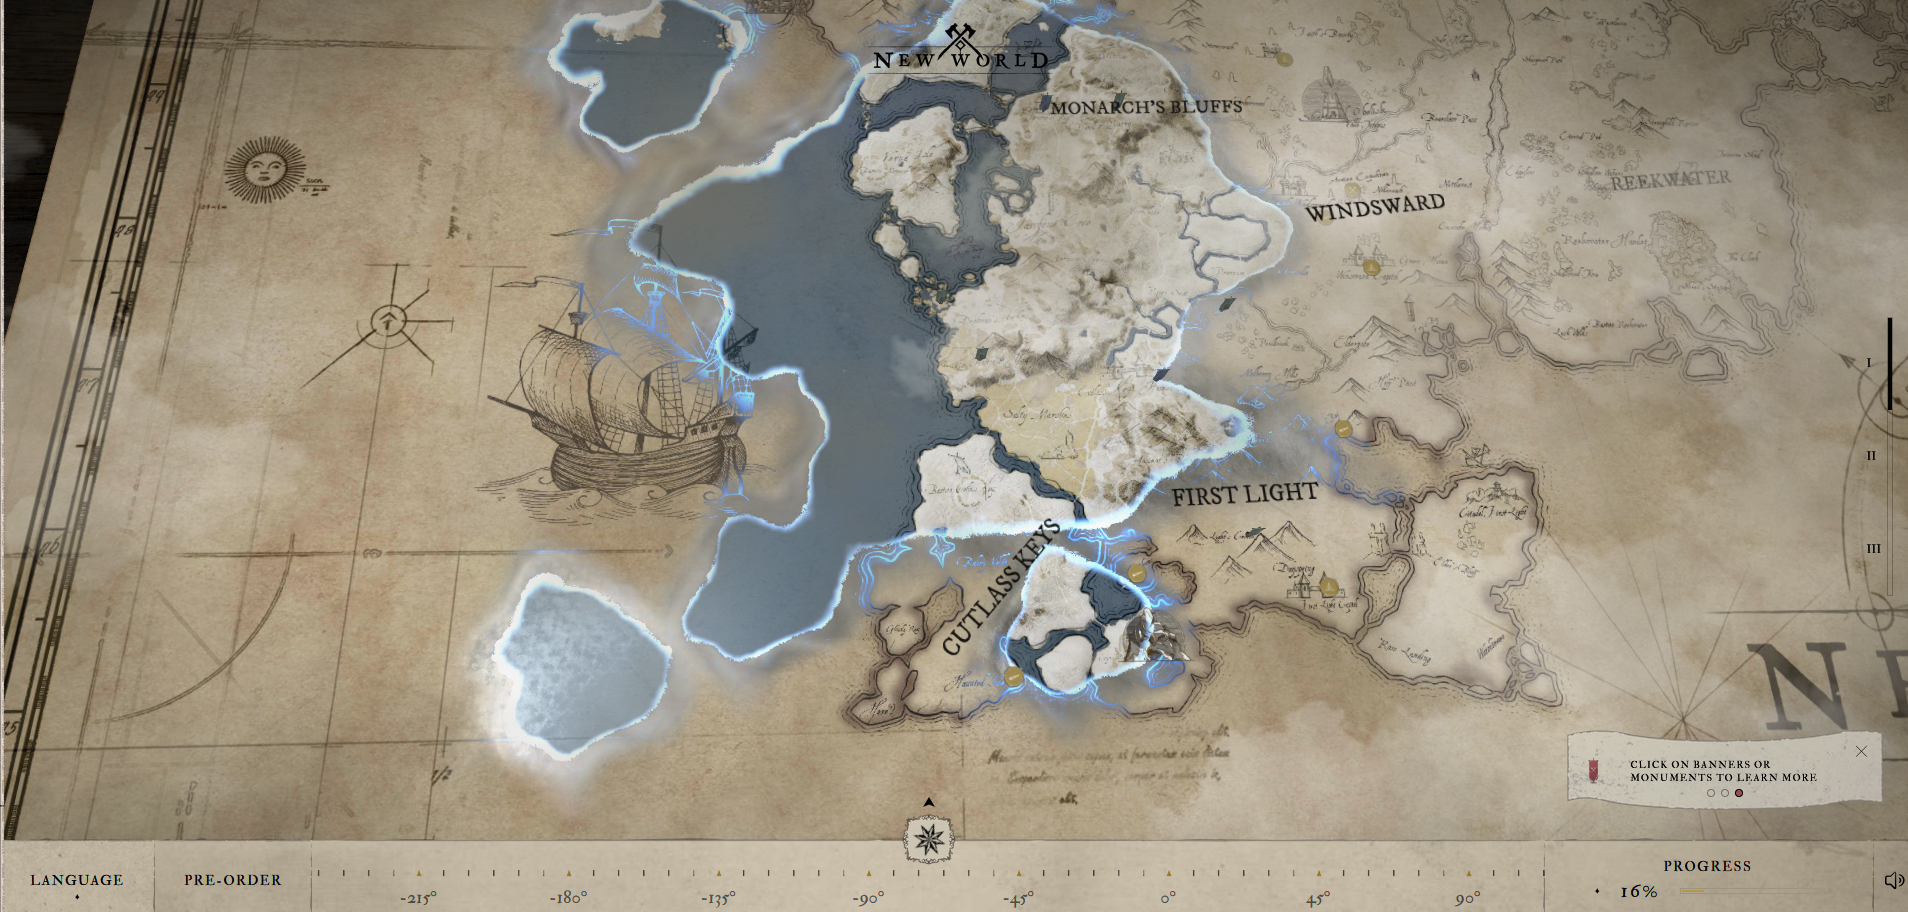 Explore Aeternum, the Setting of Amazon's New World In Your Browser